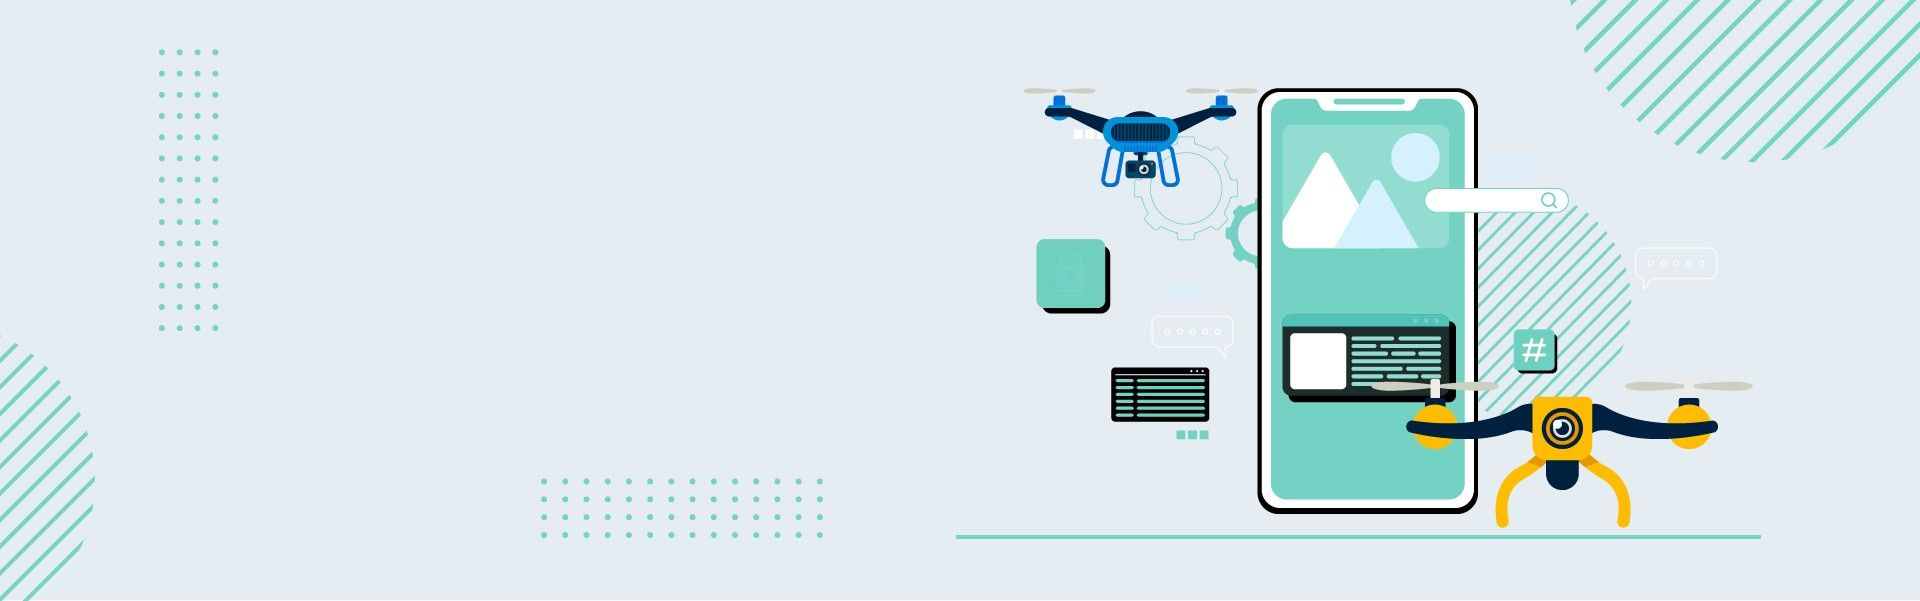 Mobile Apps and Useful Tips to Protect Your Drone From Crashes or Minimize the Harm